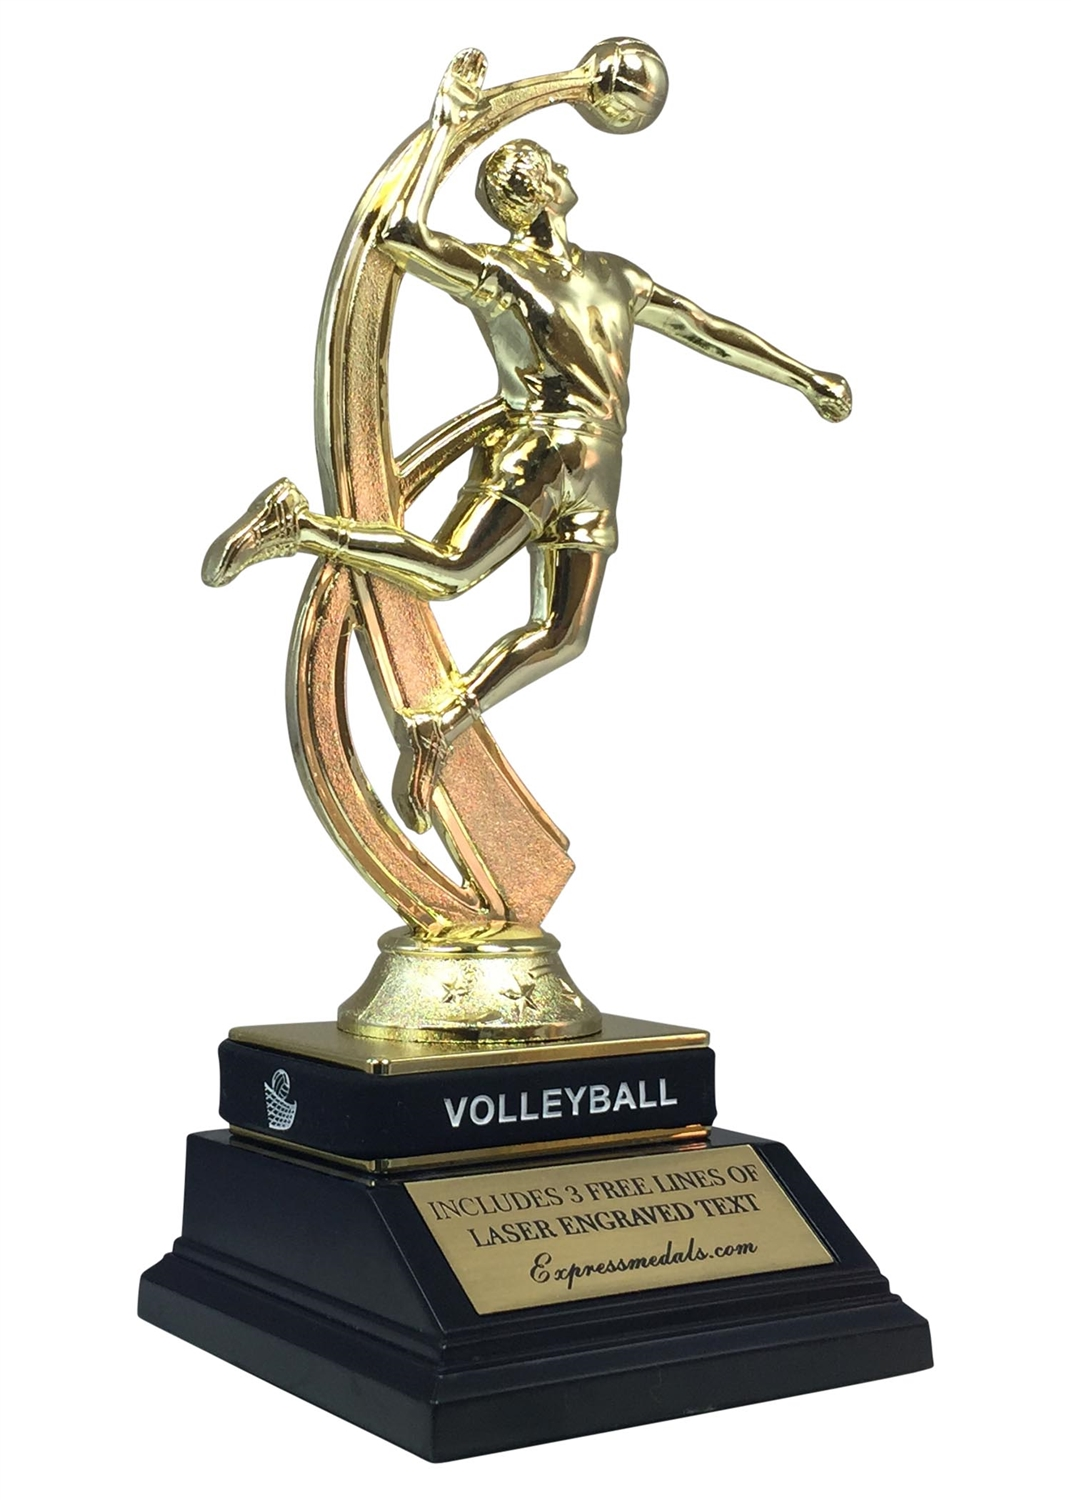 Male Volleyball Trophy with Wrist Band